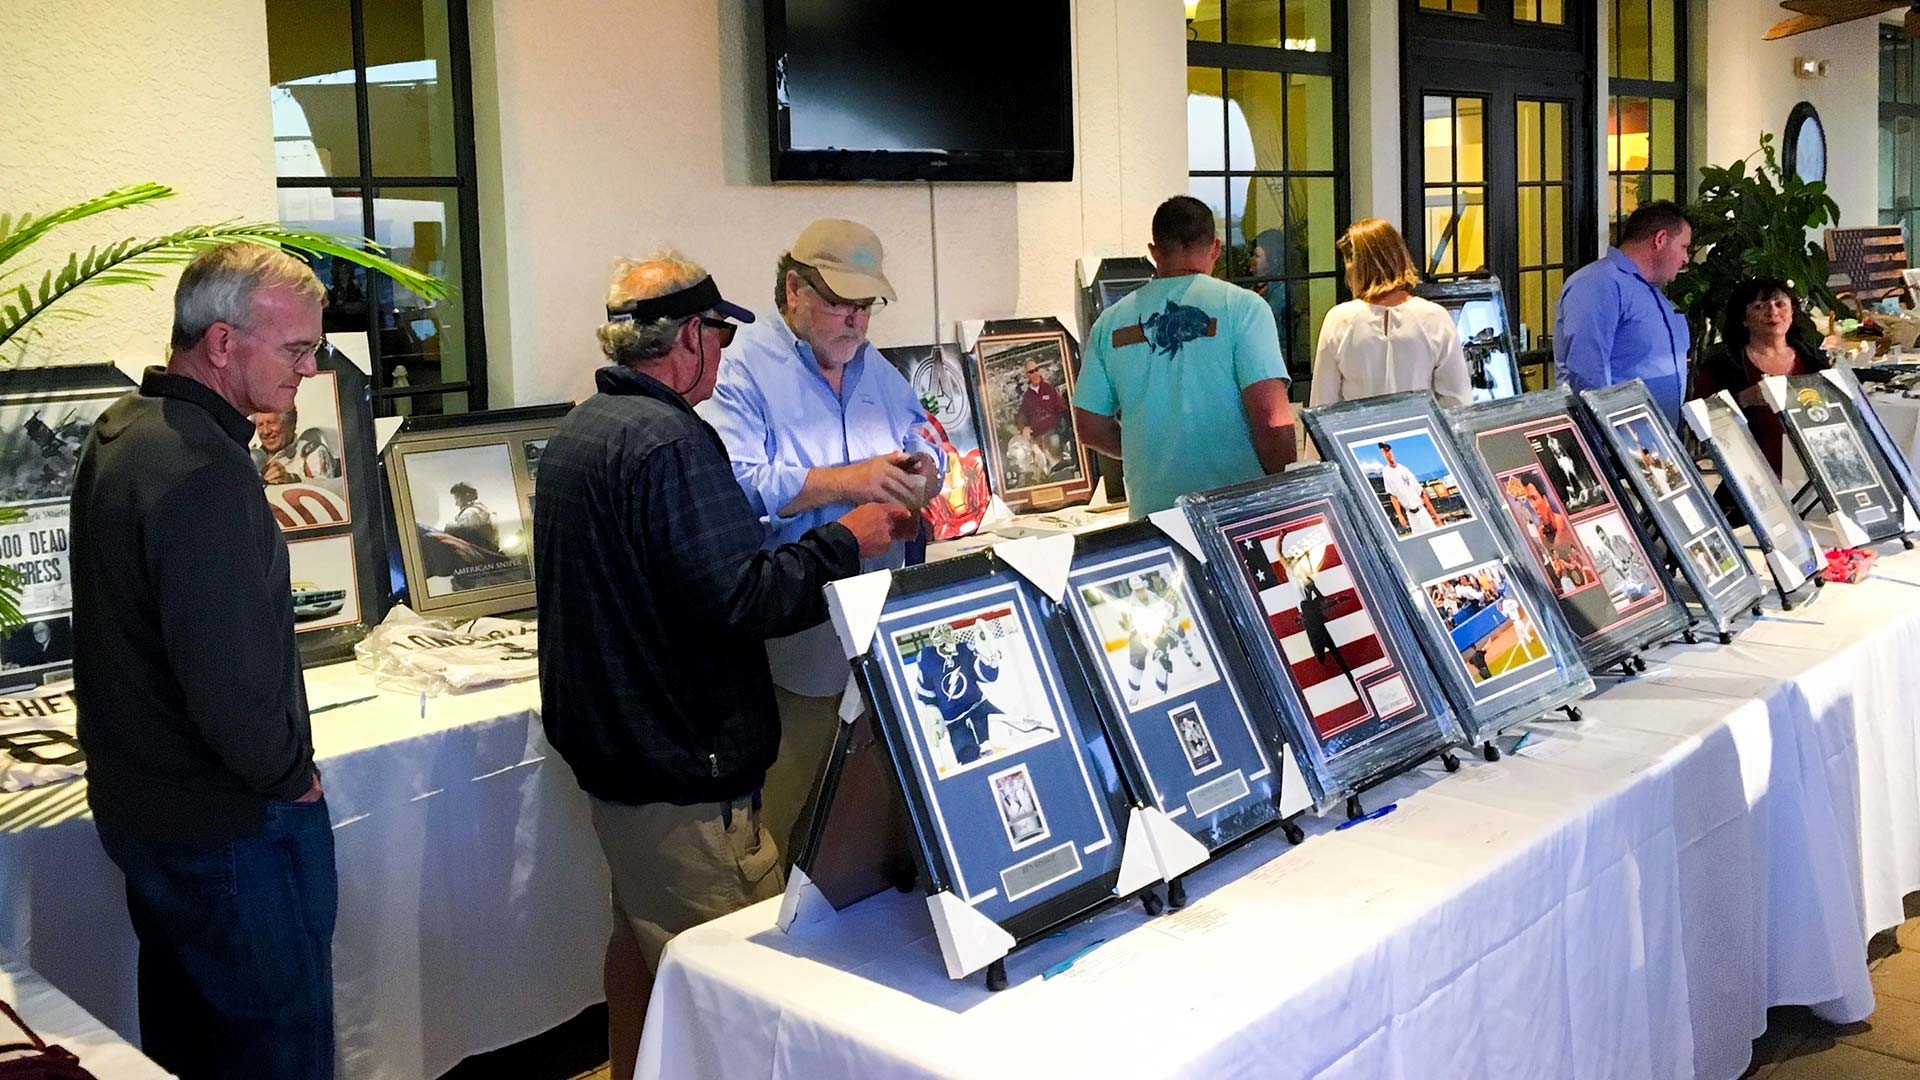 People looking at items at an event run by SociallyFunded